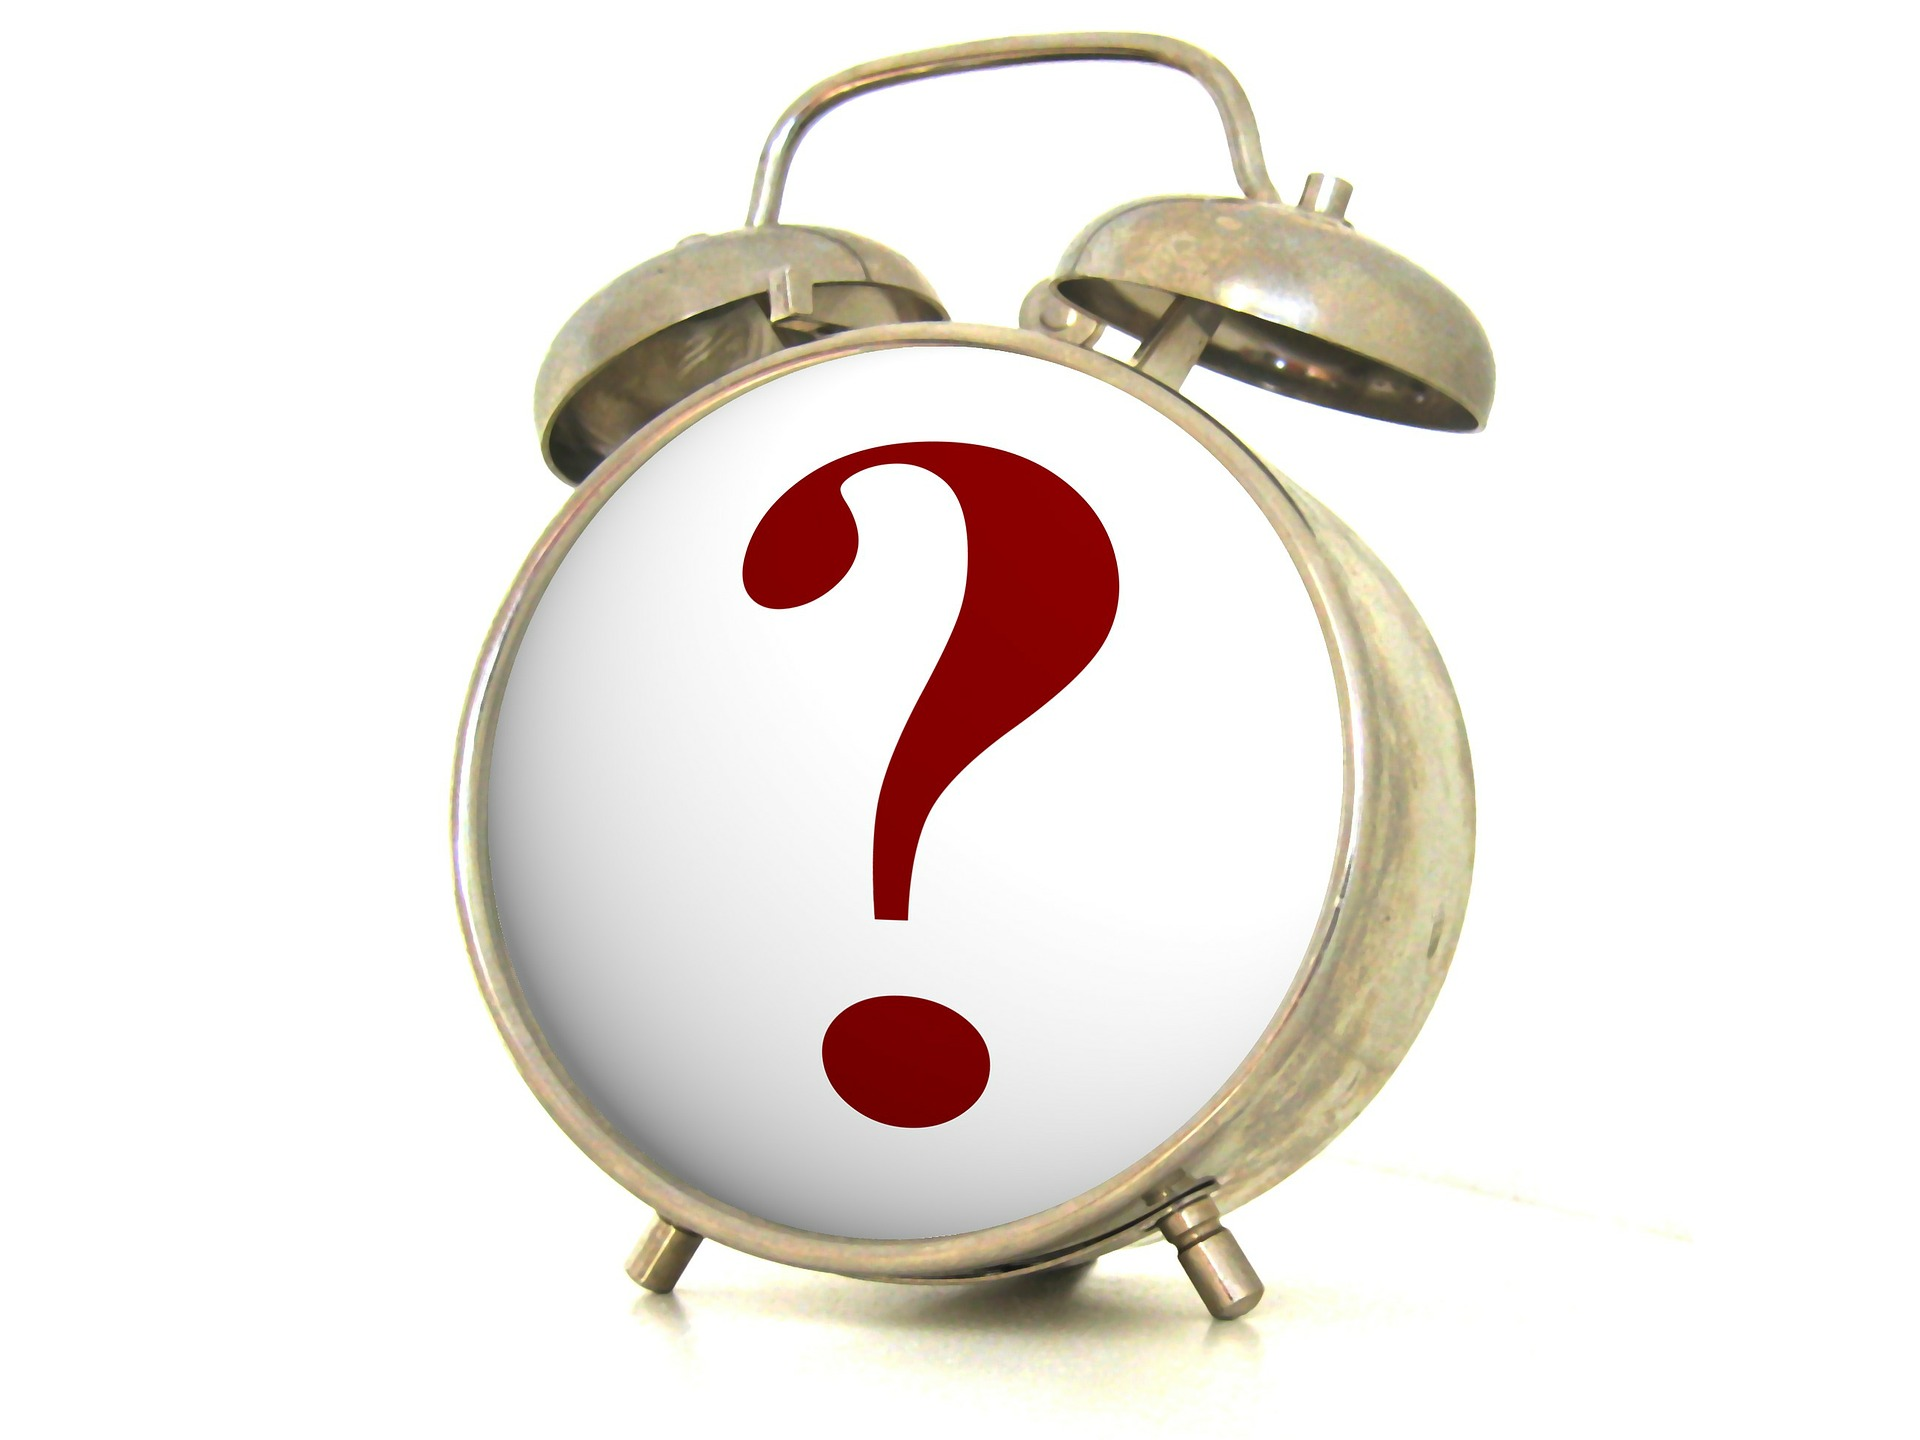 MS Project: How can I find number of days between project start date and task start date in MS Project